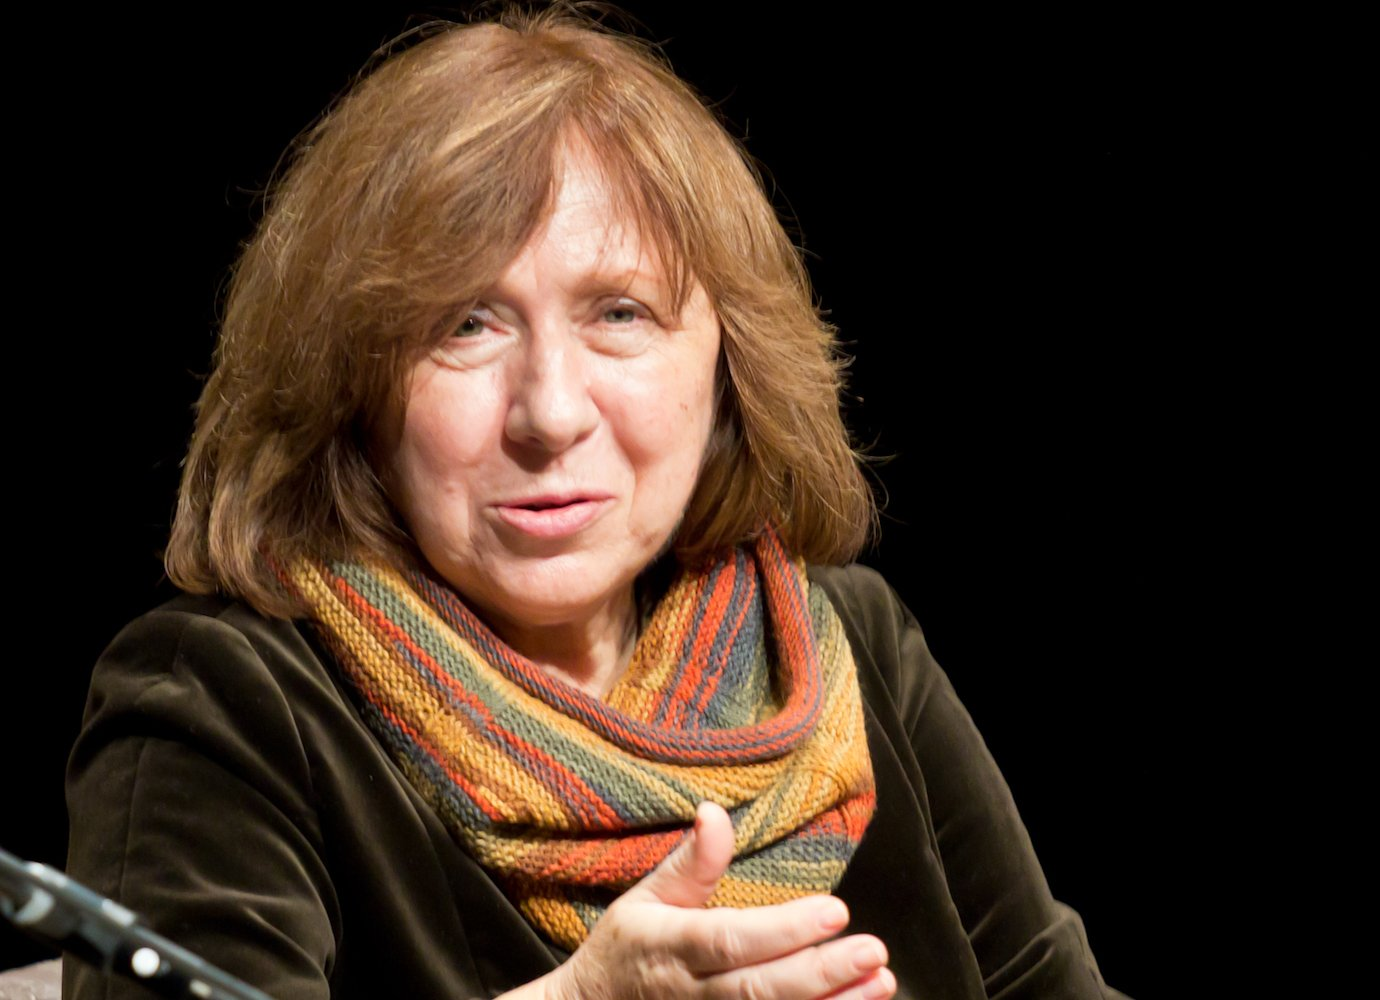 Svetlana Alexievich: where to start with her literature